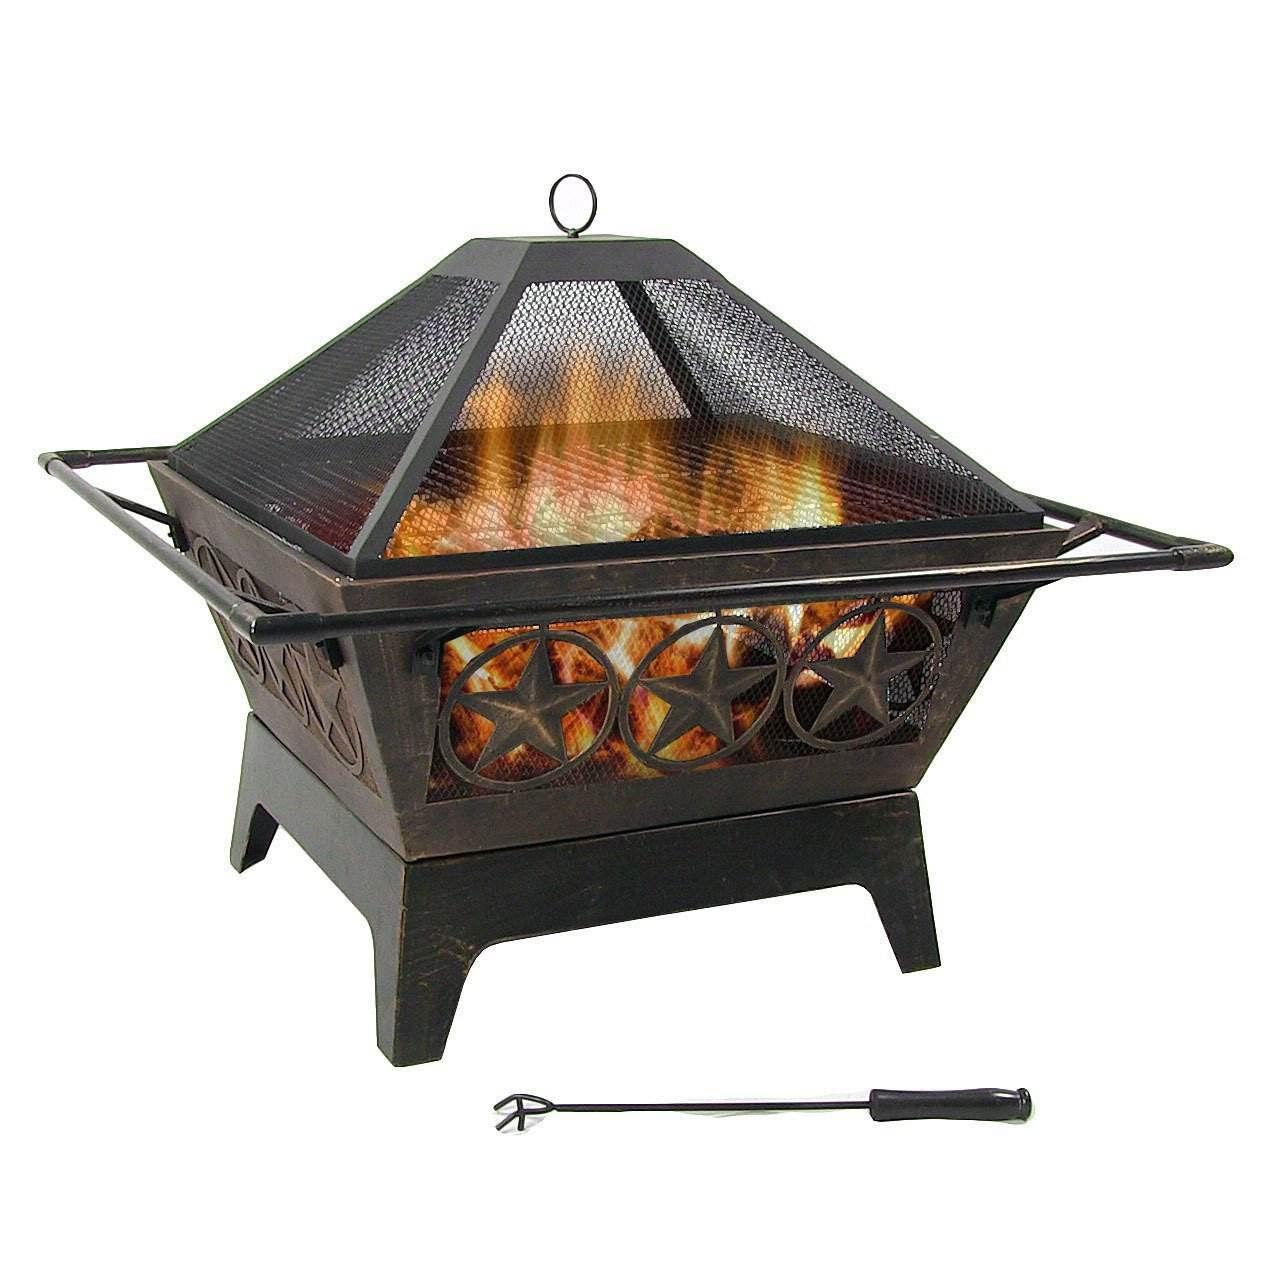 32inch Outdoor Wood Burning Squrae Fire Pit with Spark Screen